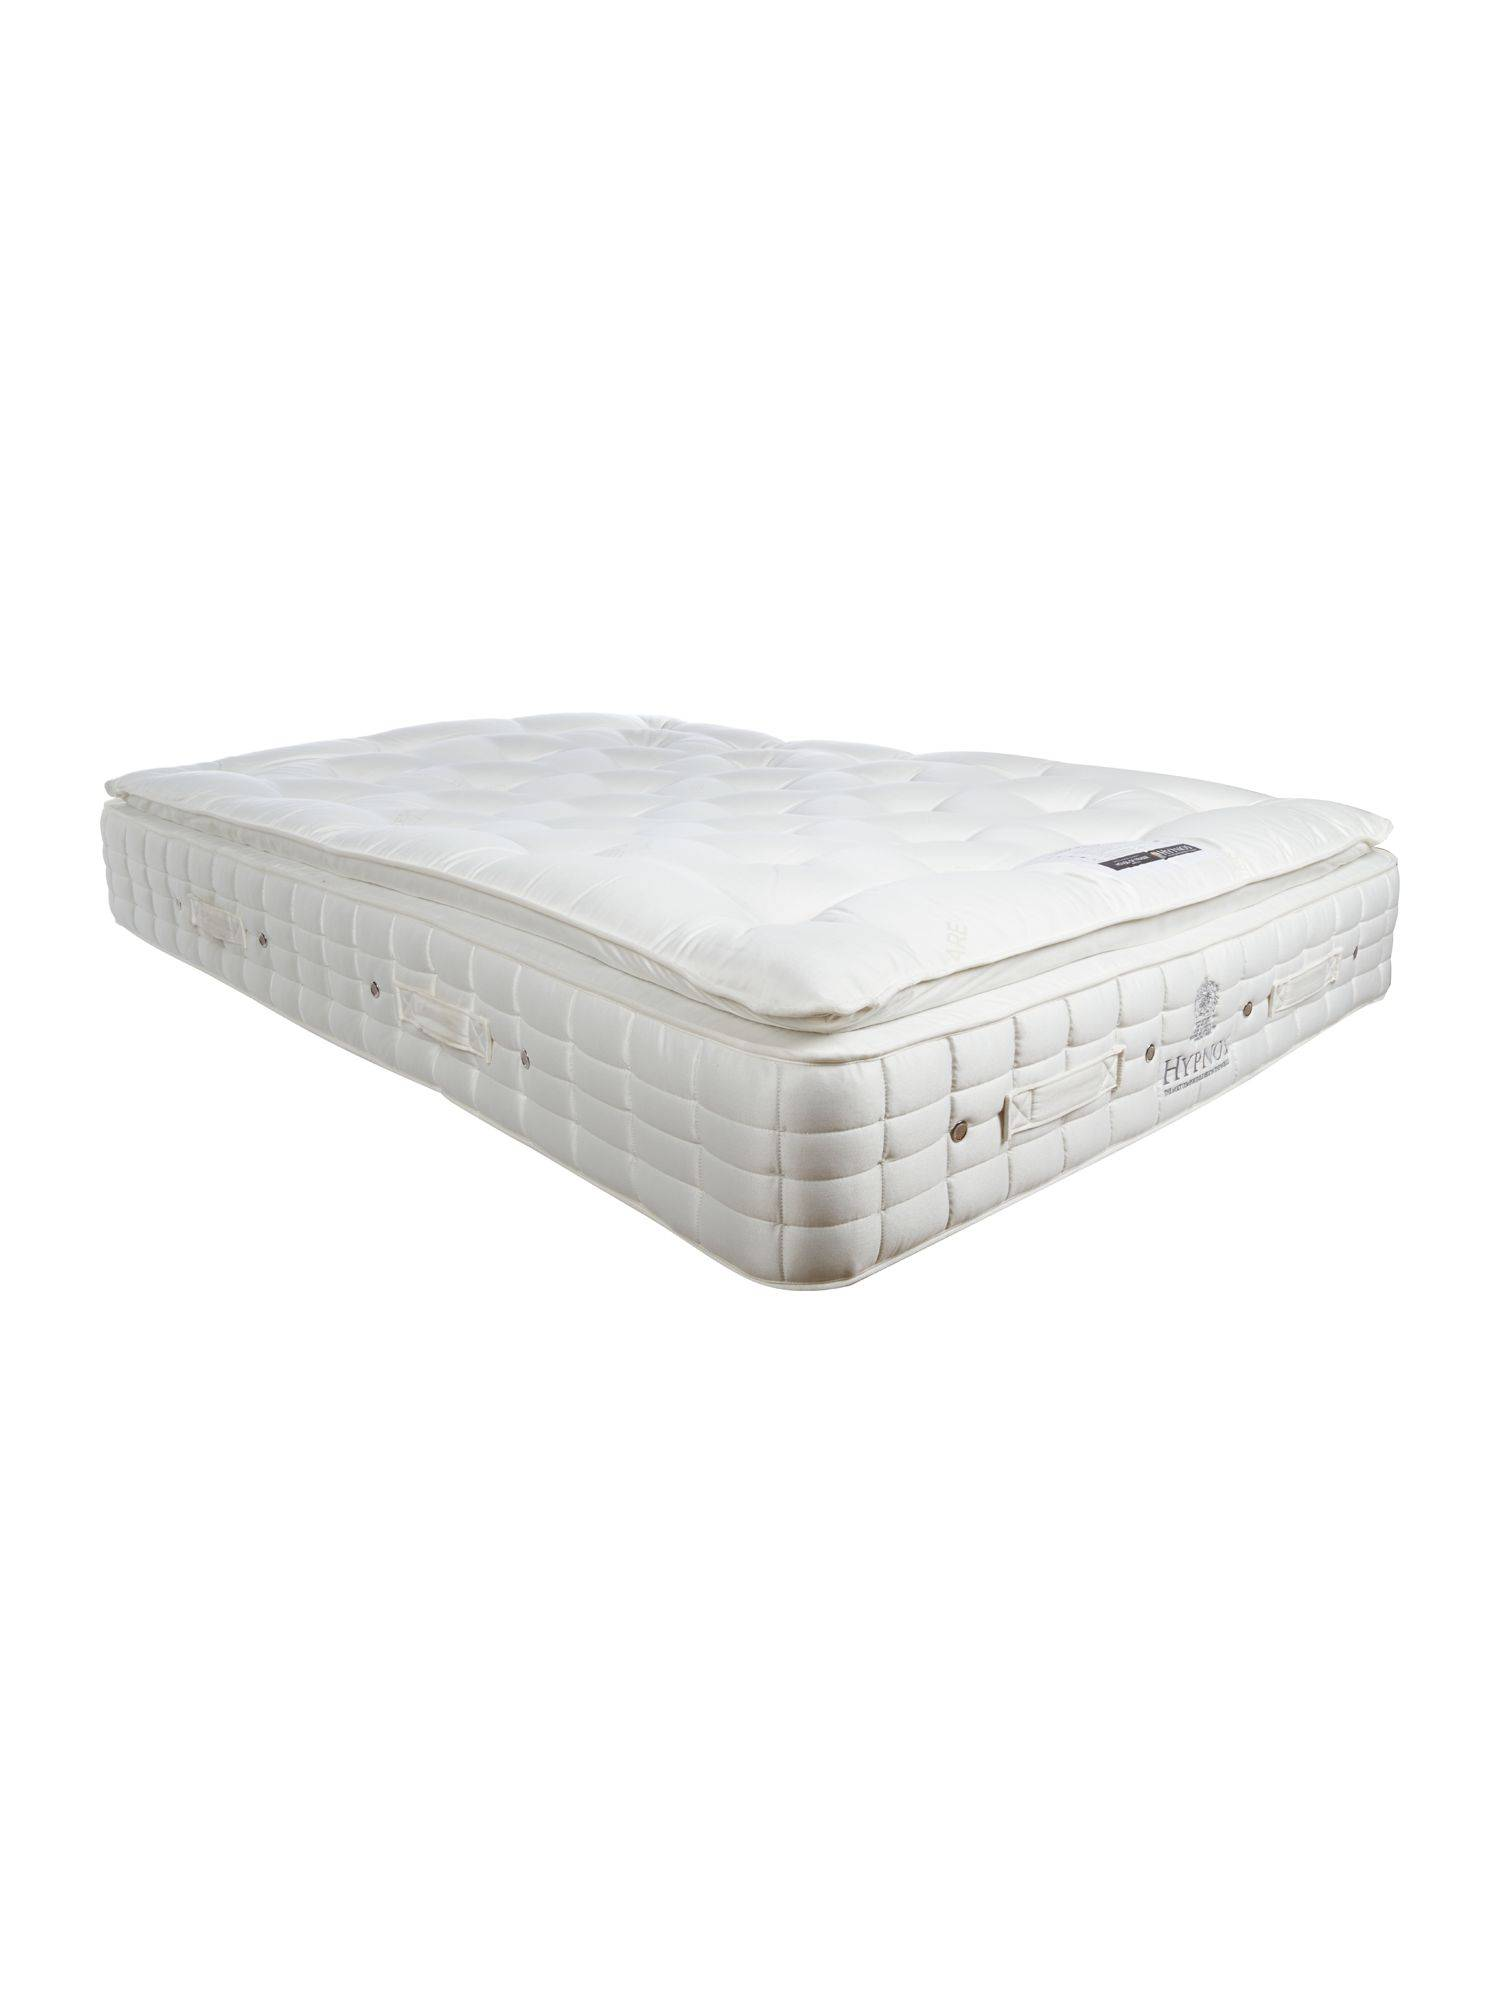 LINEA Home by Hypnos Sleepcare 2800 double mattress soft tension